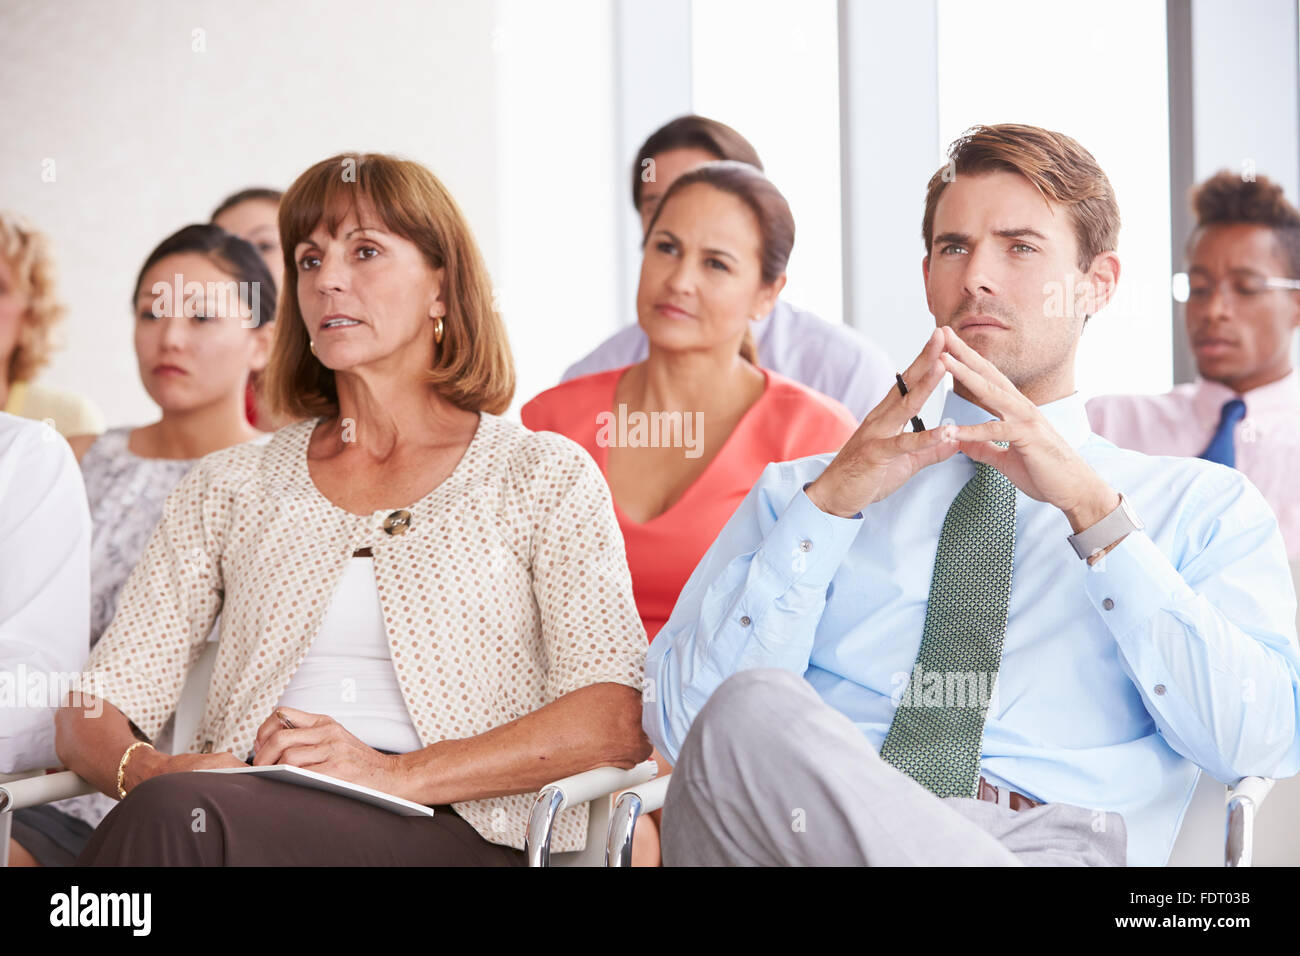 for mature audiences only stock photos for mature audiences only